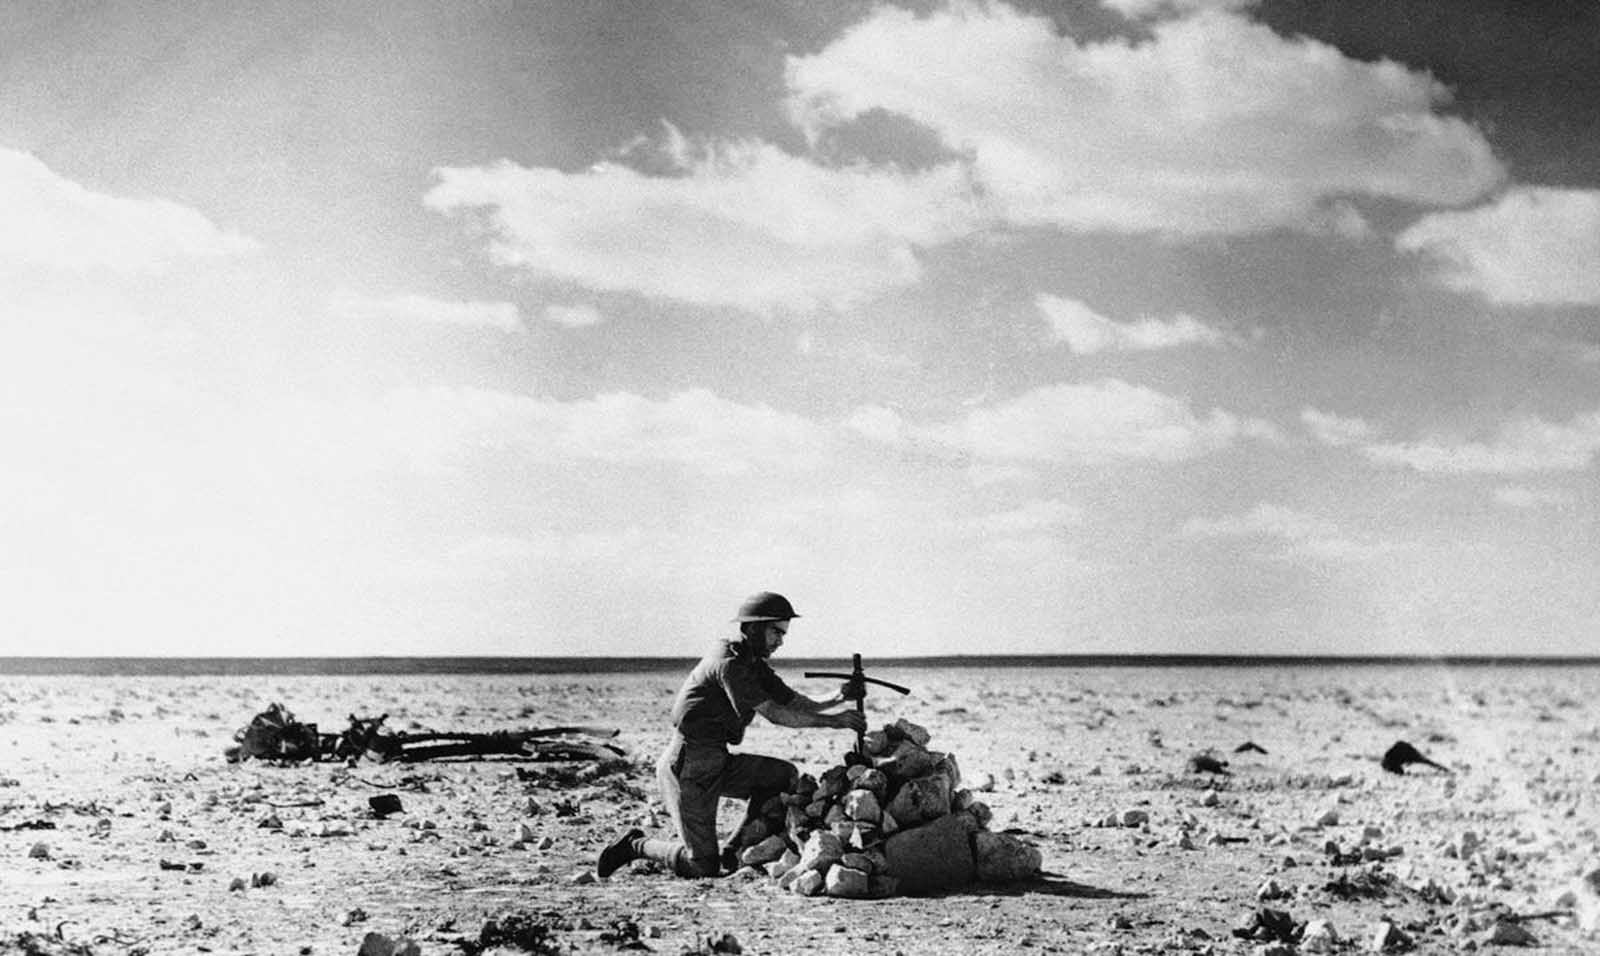 An RAF Airman places a cross, made from the wreckage of an Aircraft, over a grave on December 27, 1940, containing the bodies of five Italian Airmen shot down in the Desert Battle at Mersa Matruh on October 31, 1940.